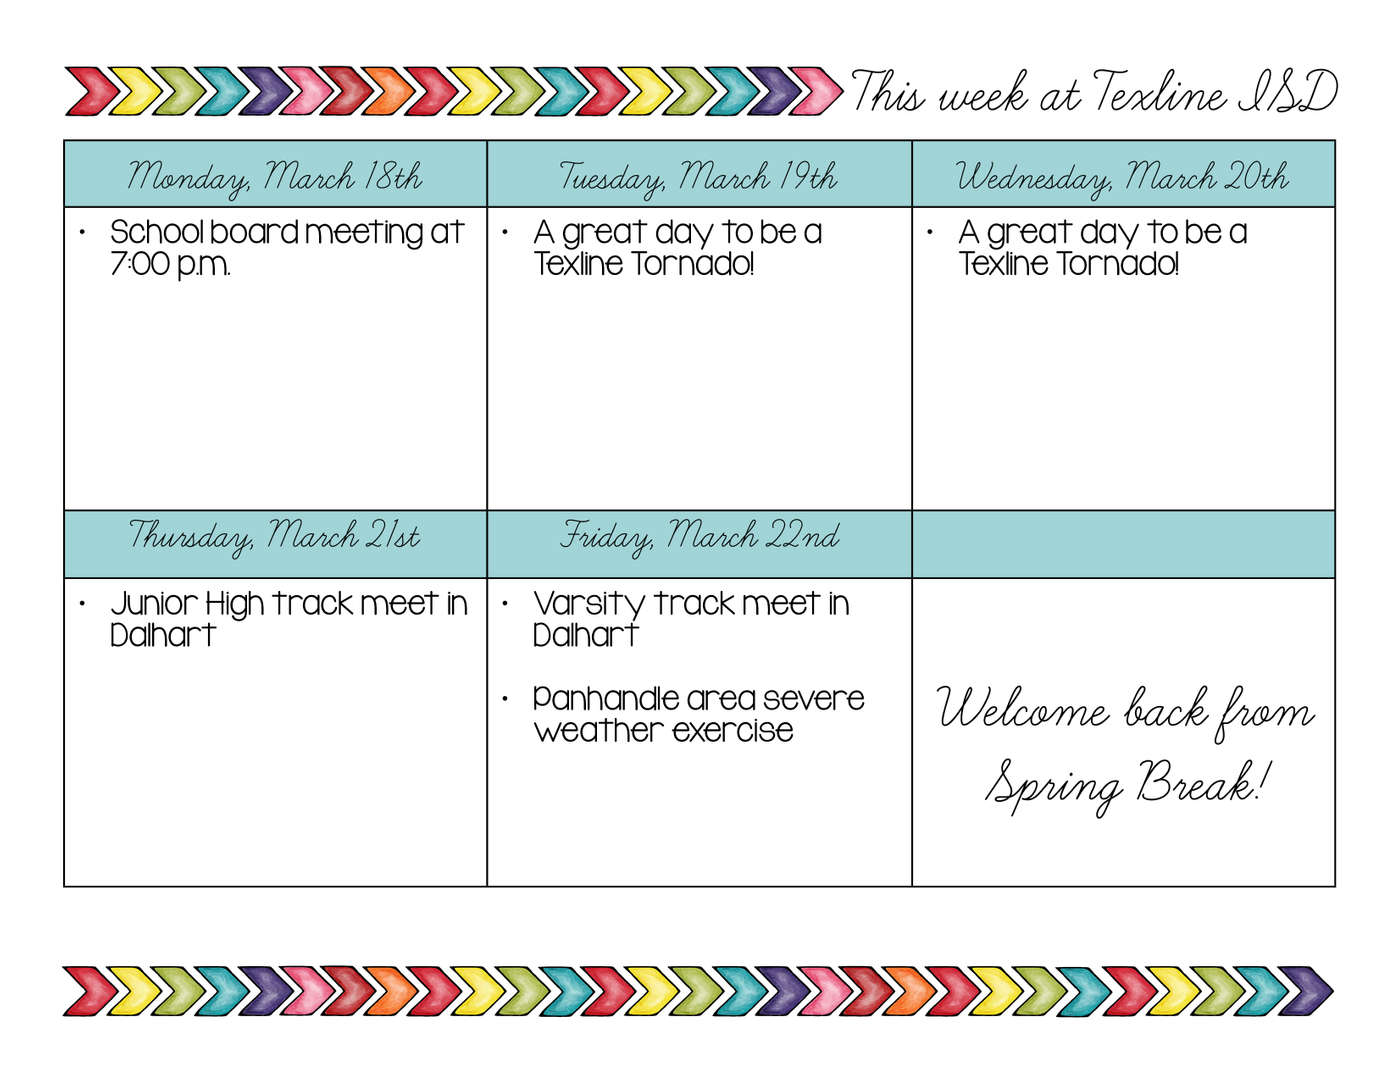 Events for the week of March 18th through March 22nd